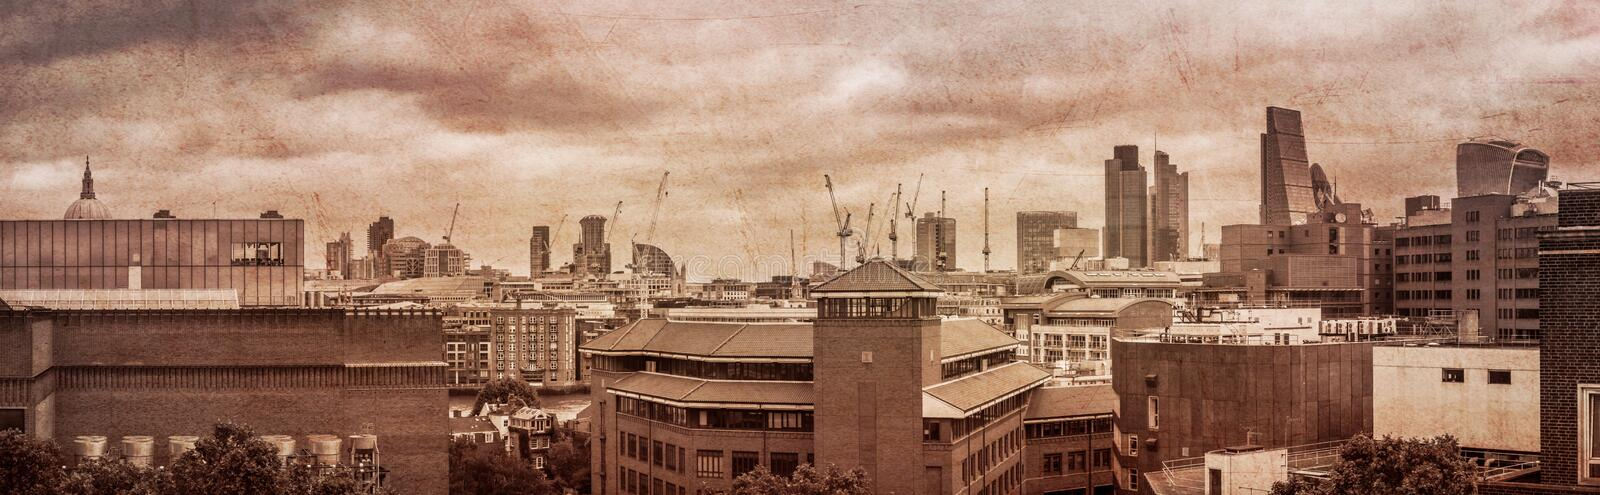 London-Stadtskylinepanorama stockbild